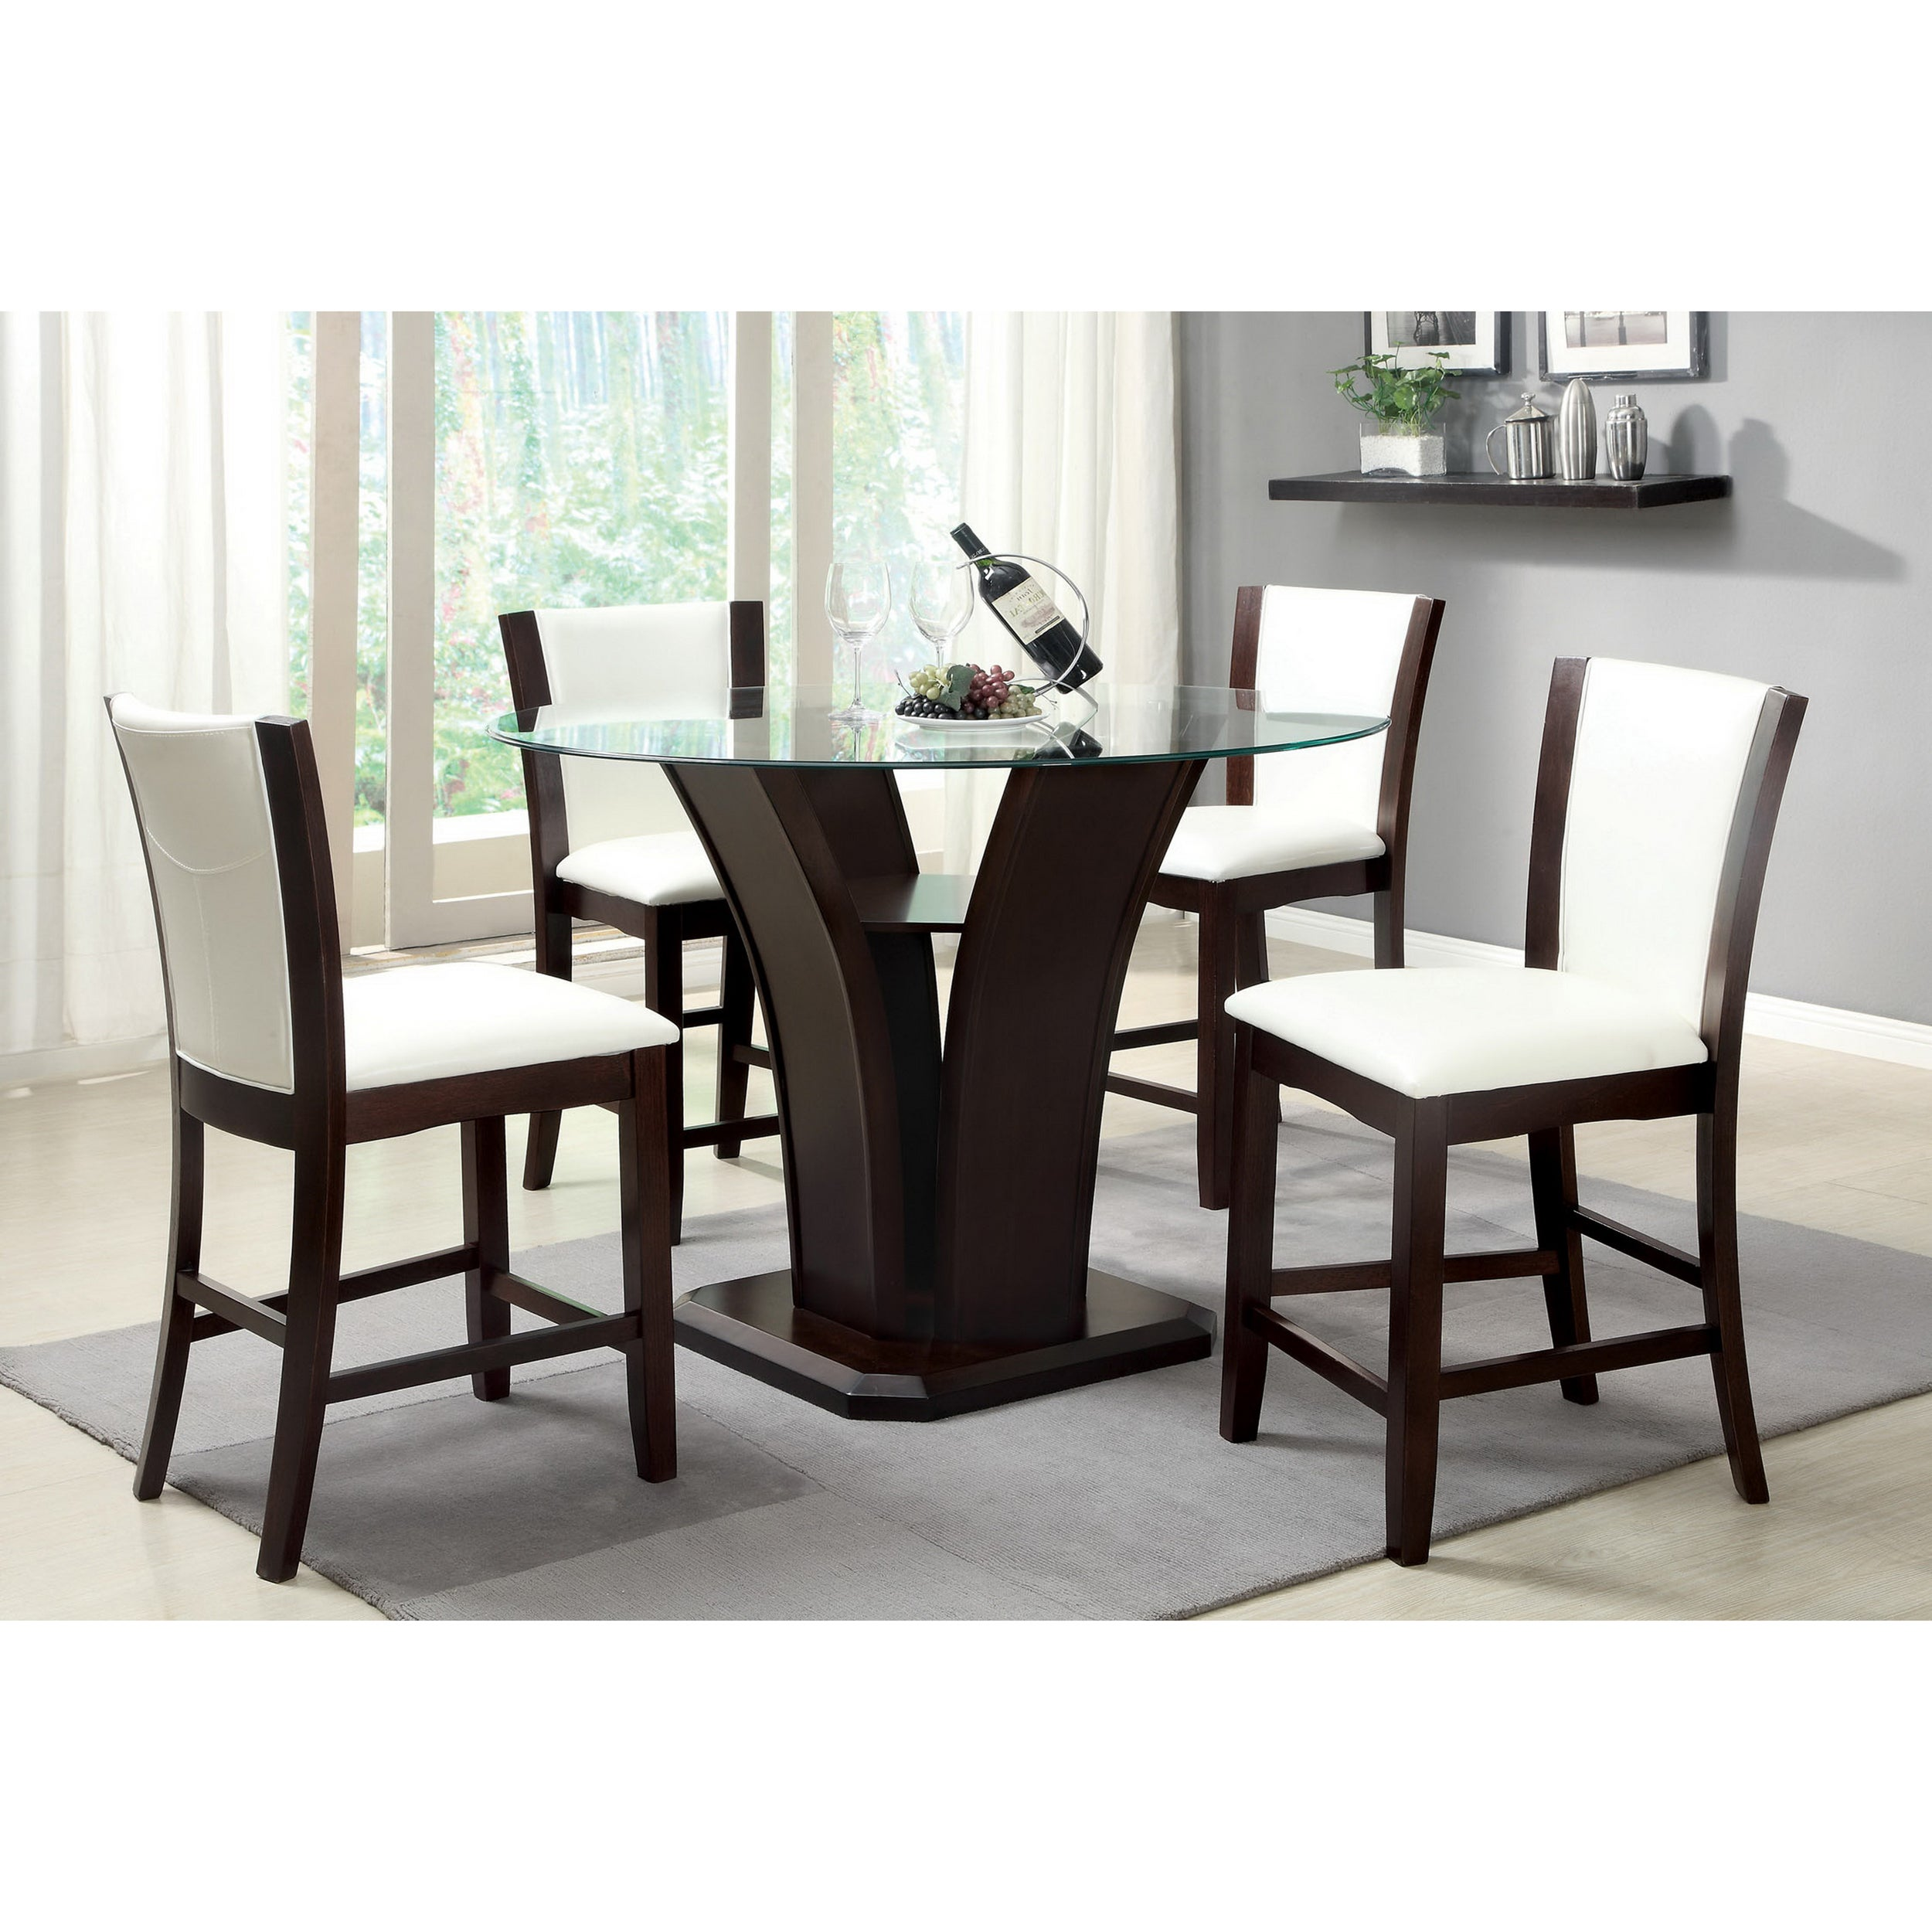 Furniture Of America Carlise Contemporary Round Counter Height Glass  5 Piece Dining Set